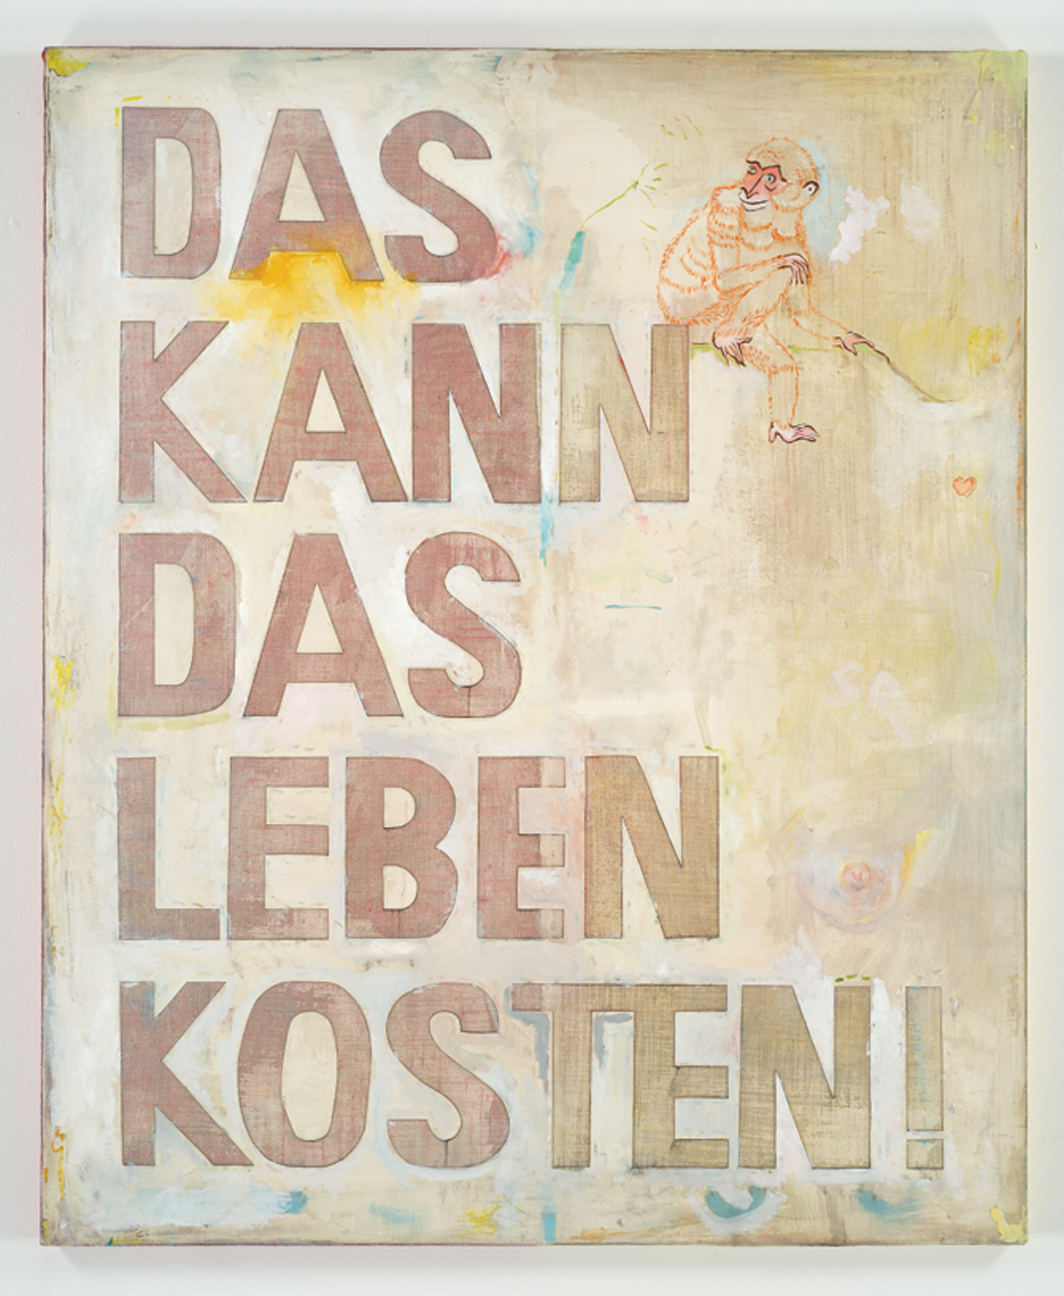 "Sophie Reinhold, Das kann das leben kosten (That Could Cost You Your Life), 2020, oil on marble powder on jute, 55 × 43 1⁄4""."